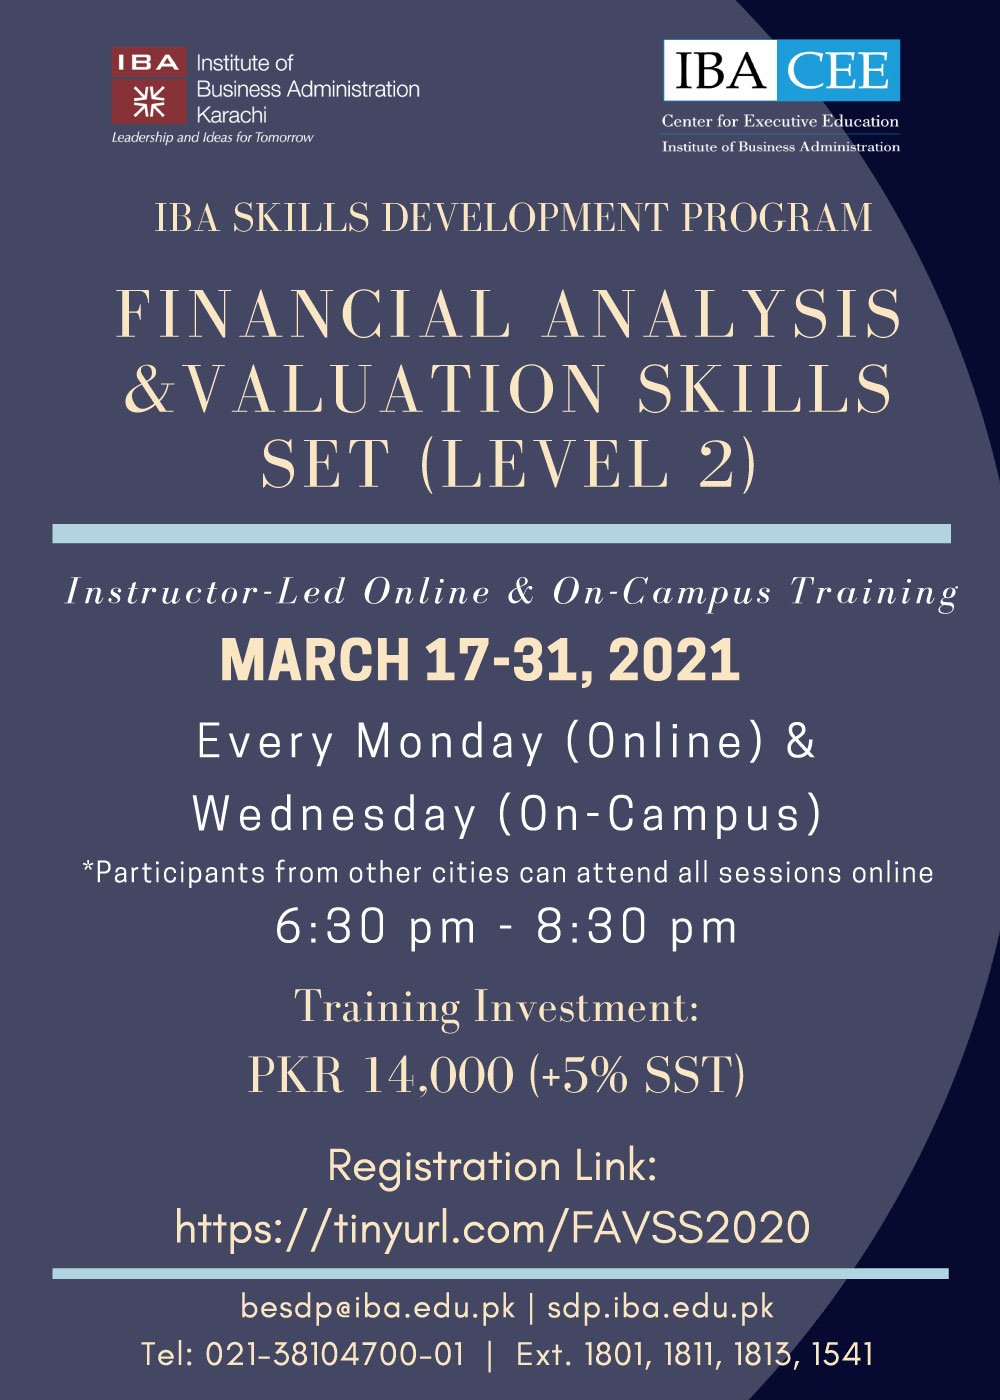 Financial Analysis & Valuation Skill Sets